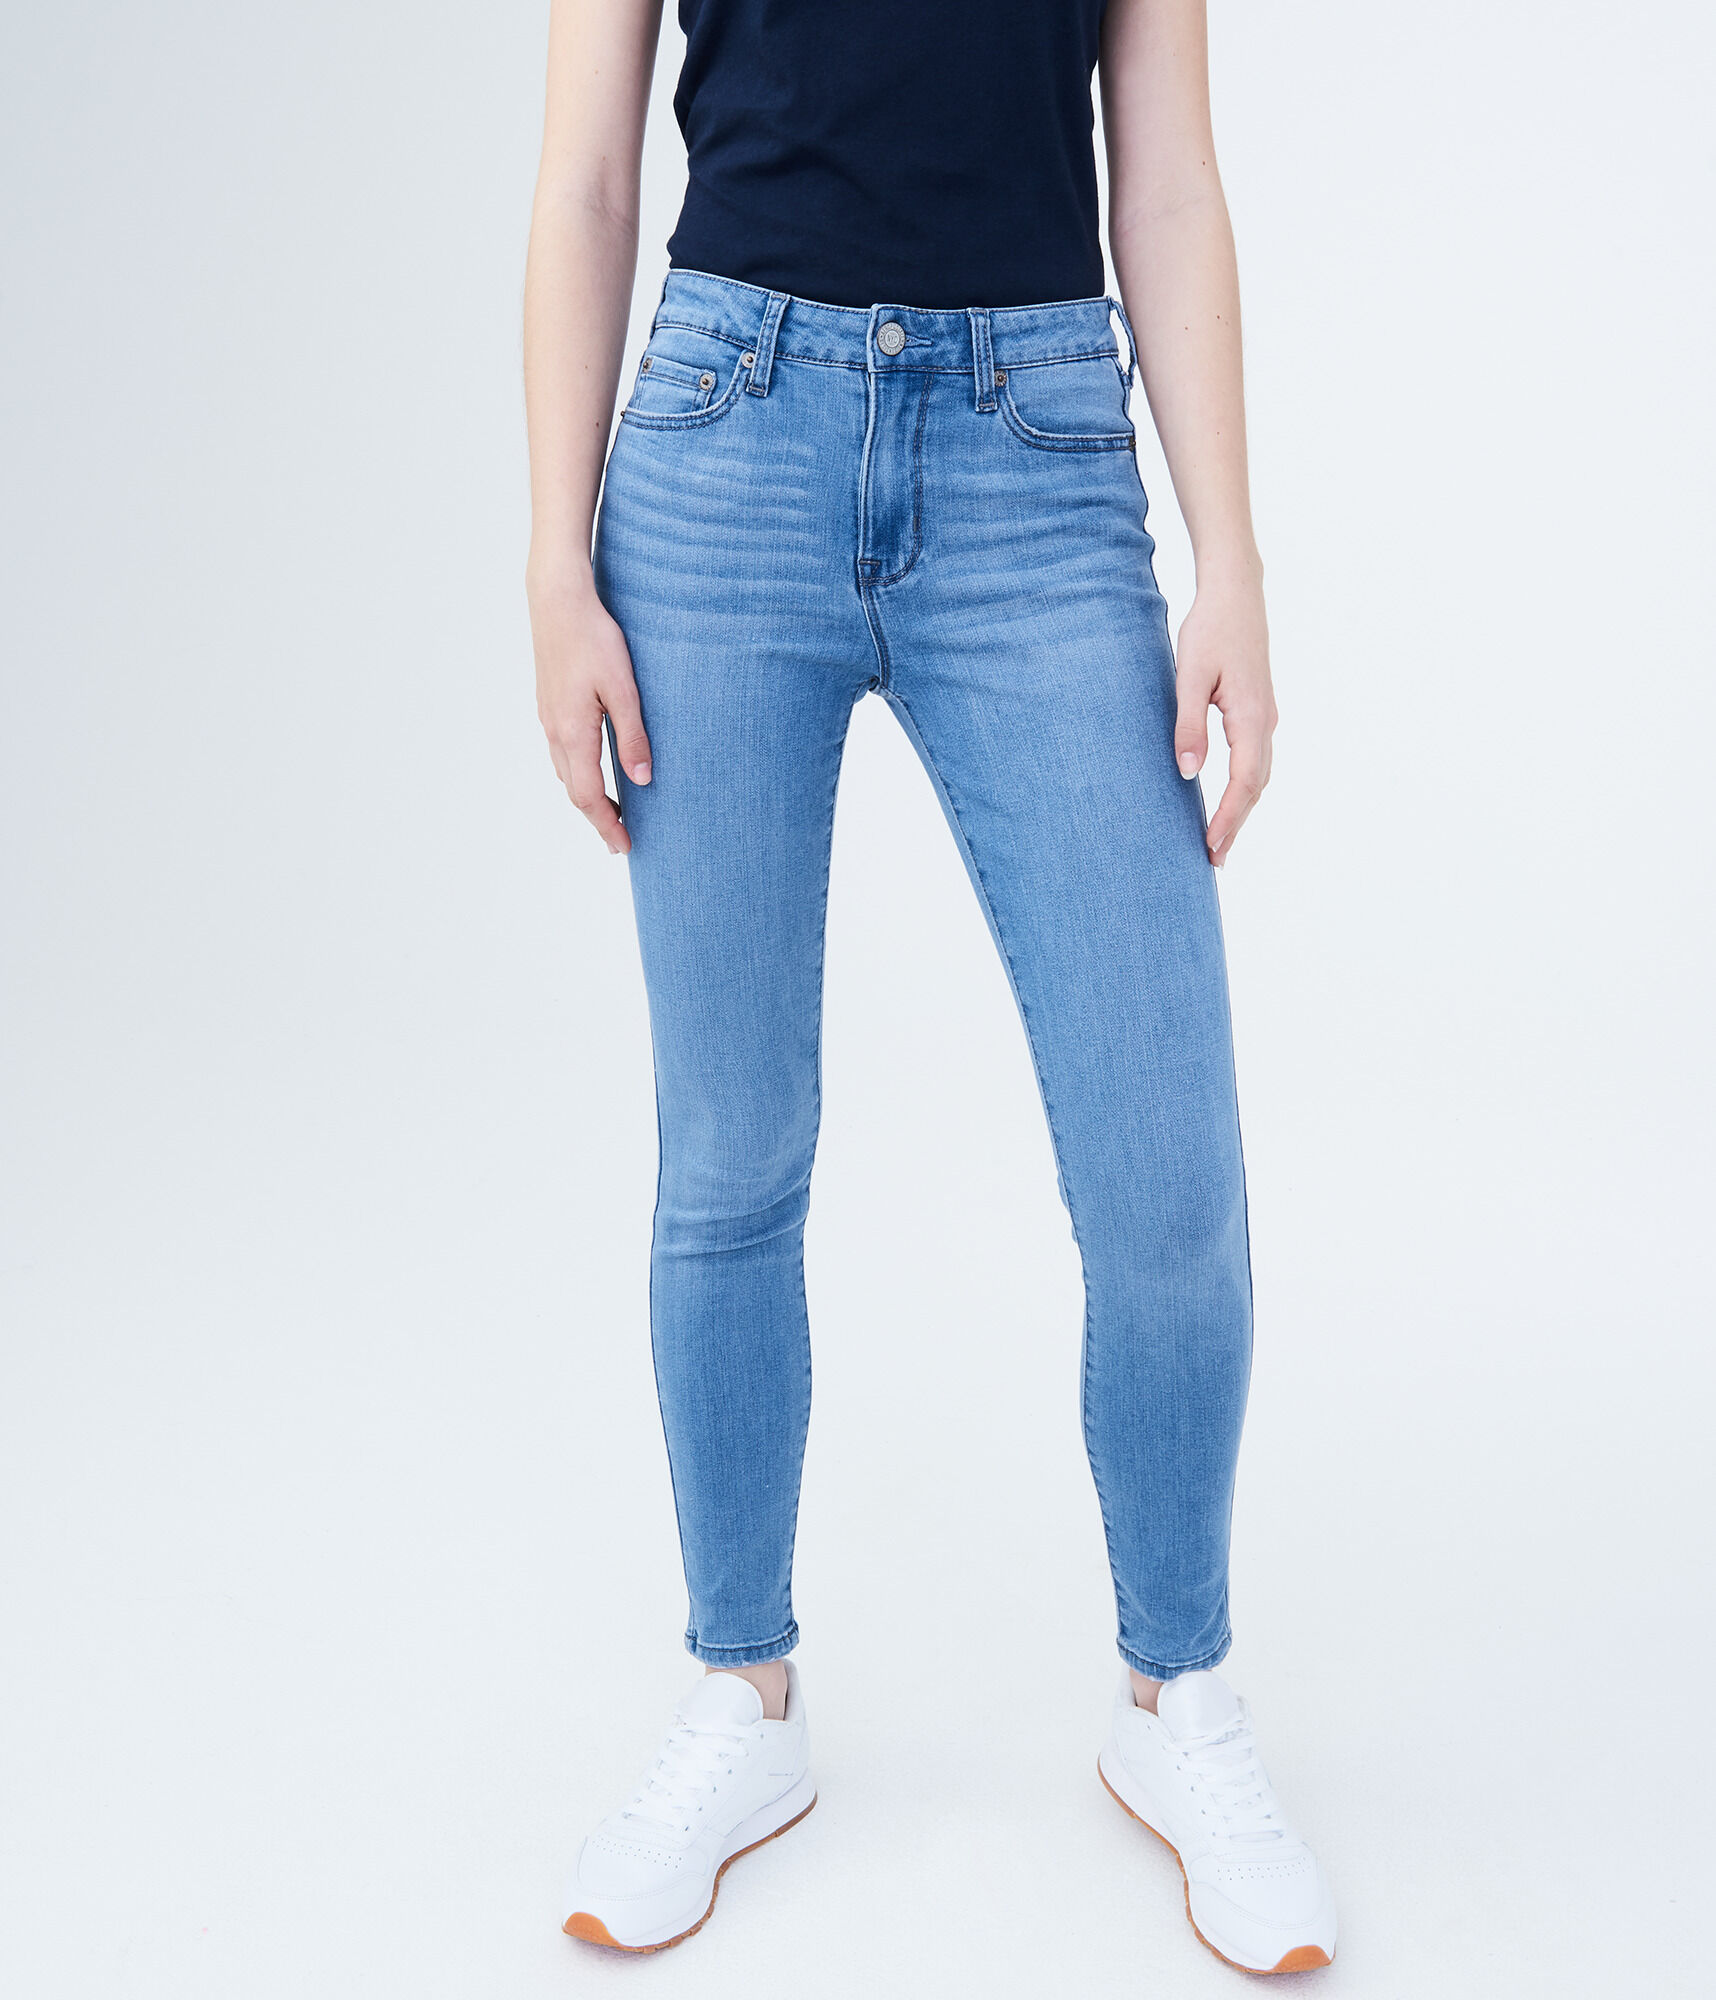 Aeropostale Jeans amp; Girls for Women qPIIHw1p